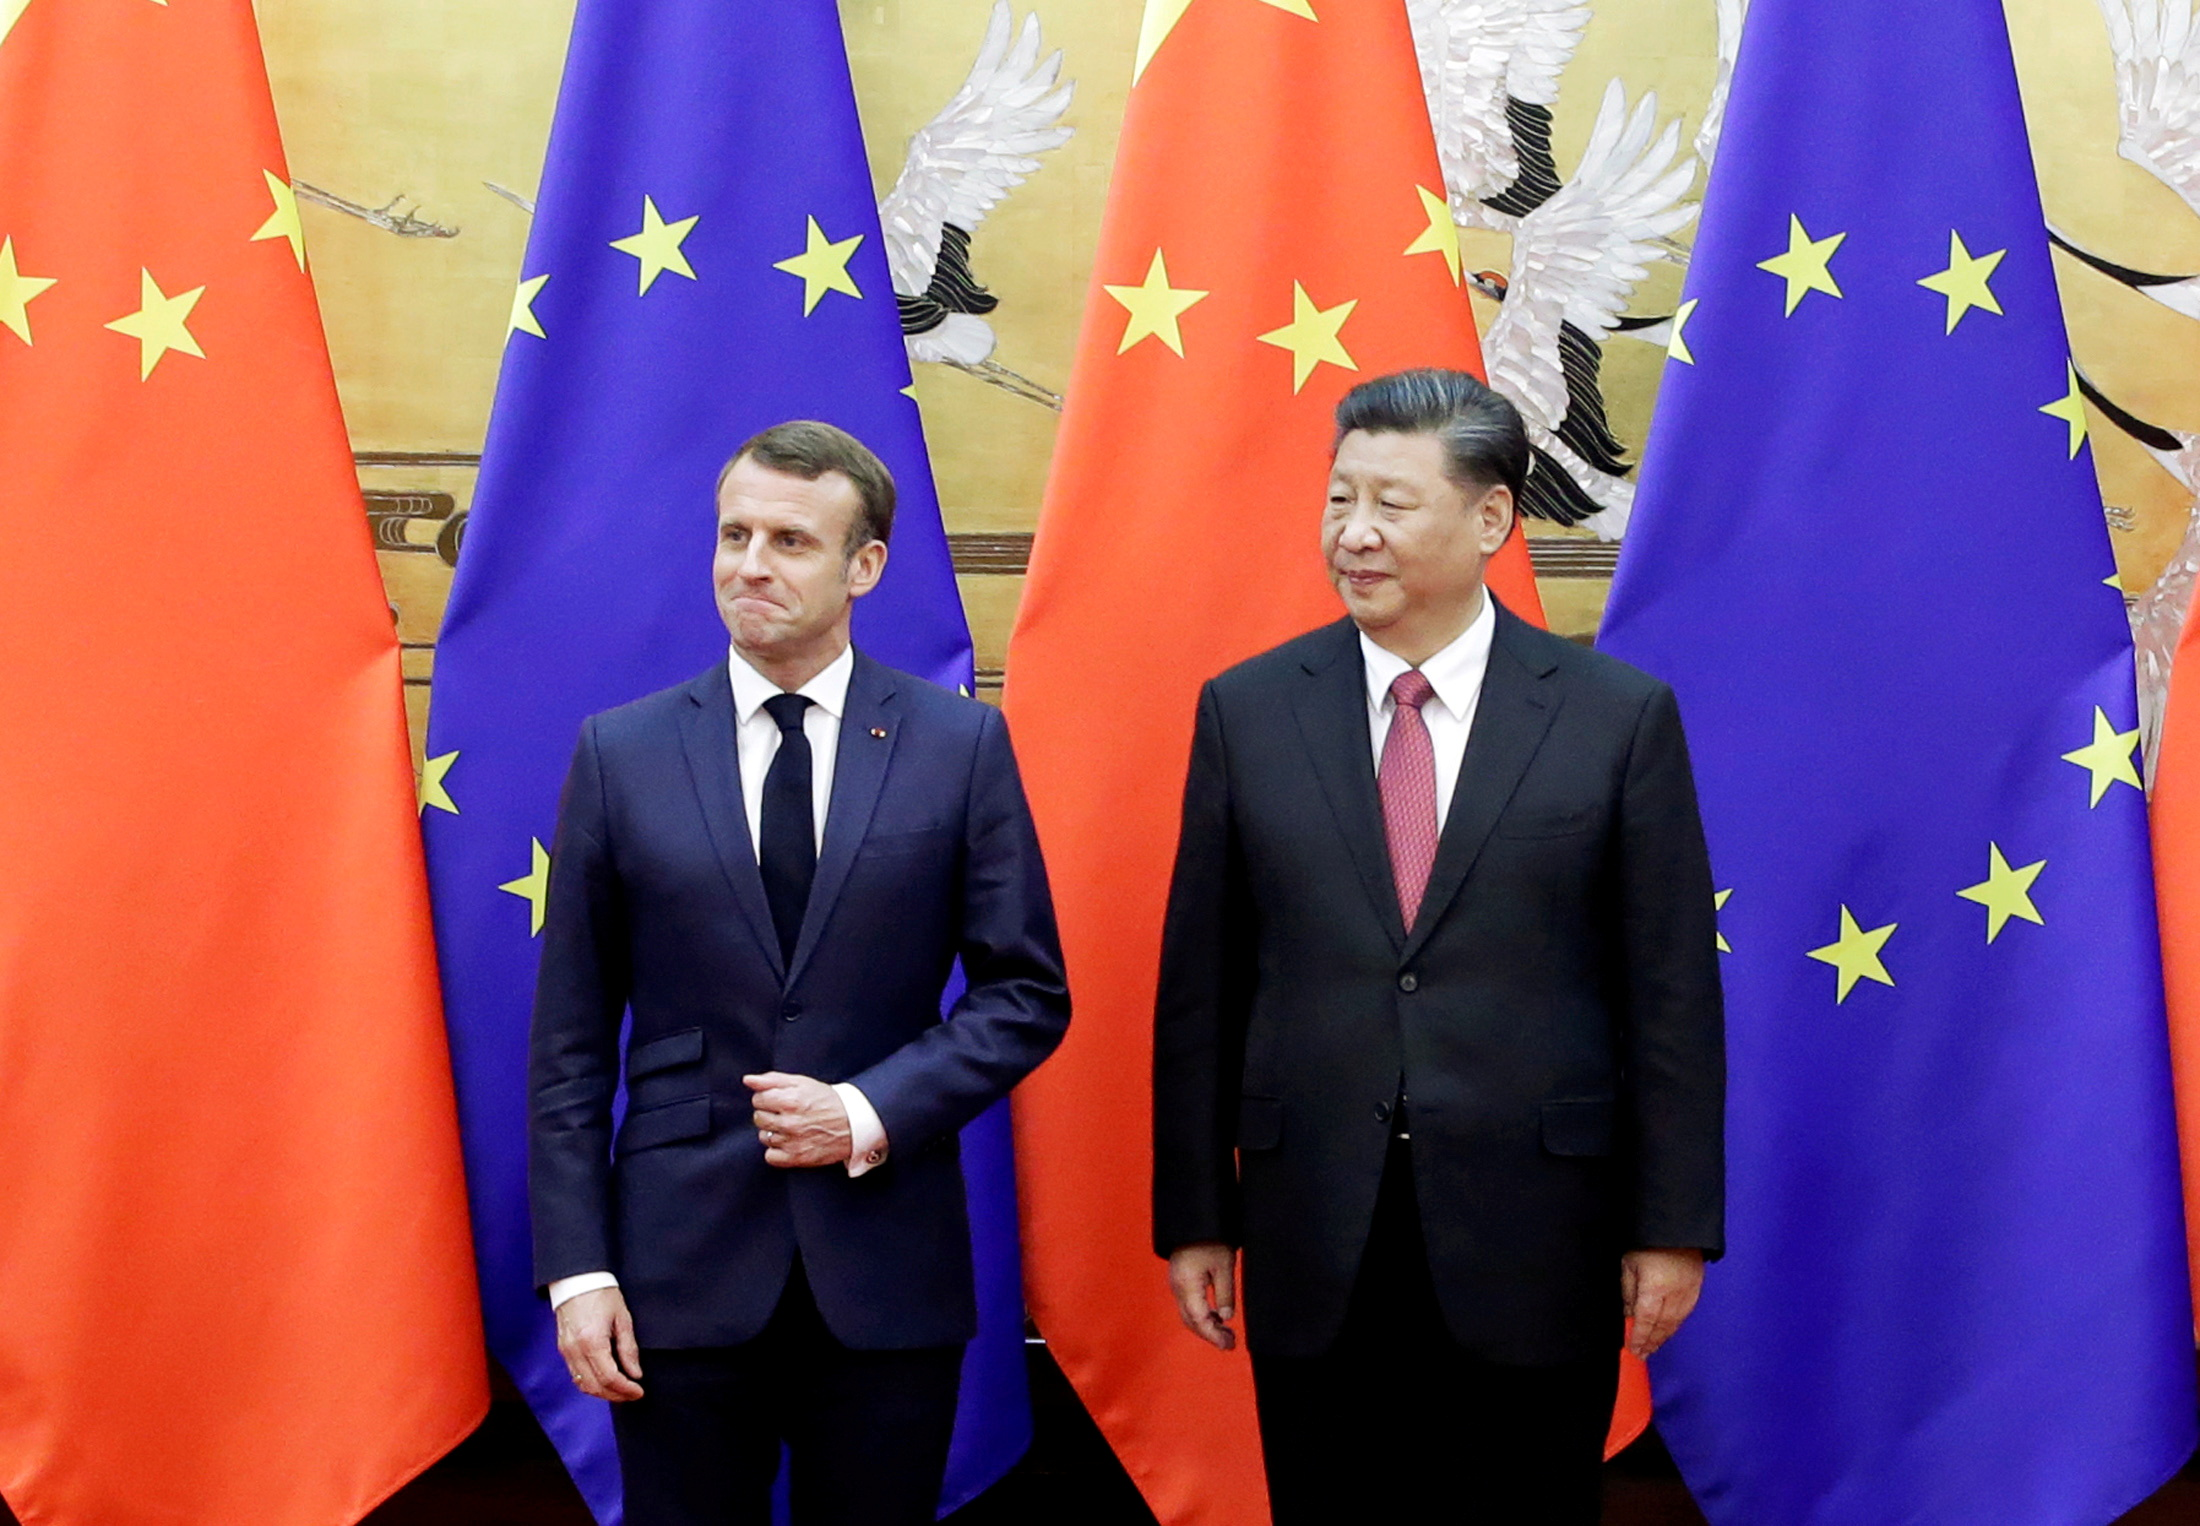 Chinese President Xi Jinping and French President Emmanuel Macron stand in front of Chinese and EU flags at a signing ceremony inside the Great Hall of the People in Beijing, China November 6, 2019.  REUTERS/Jason Lee/Pool/File Photo